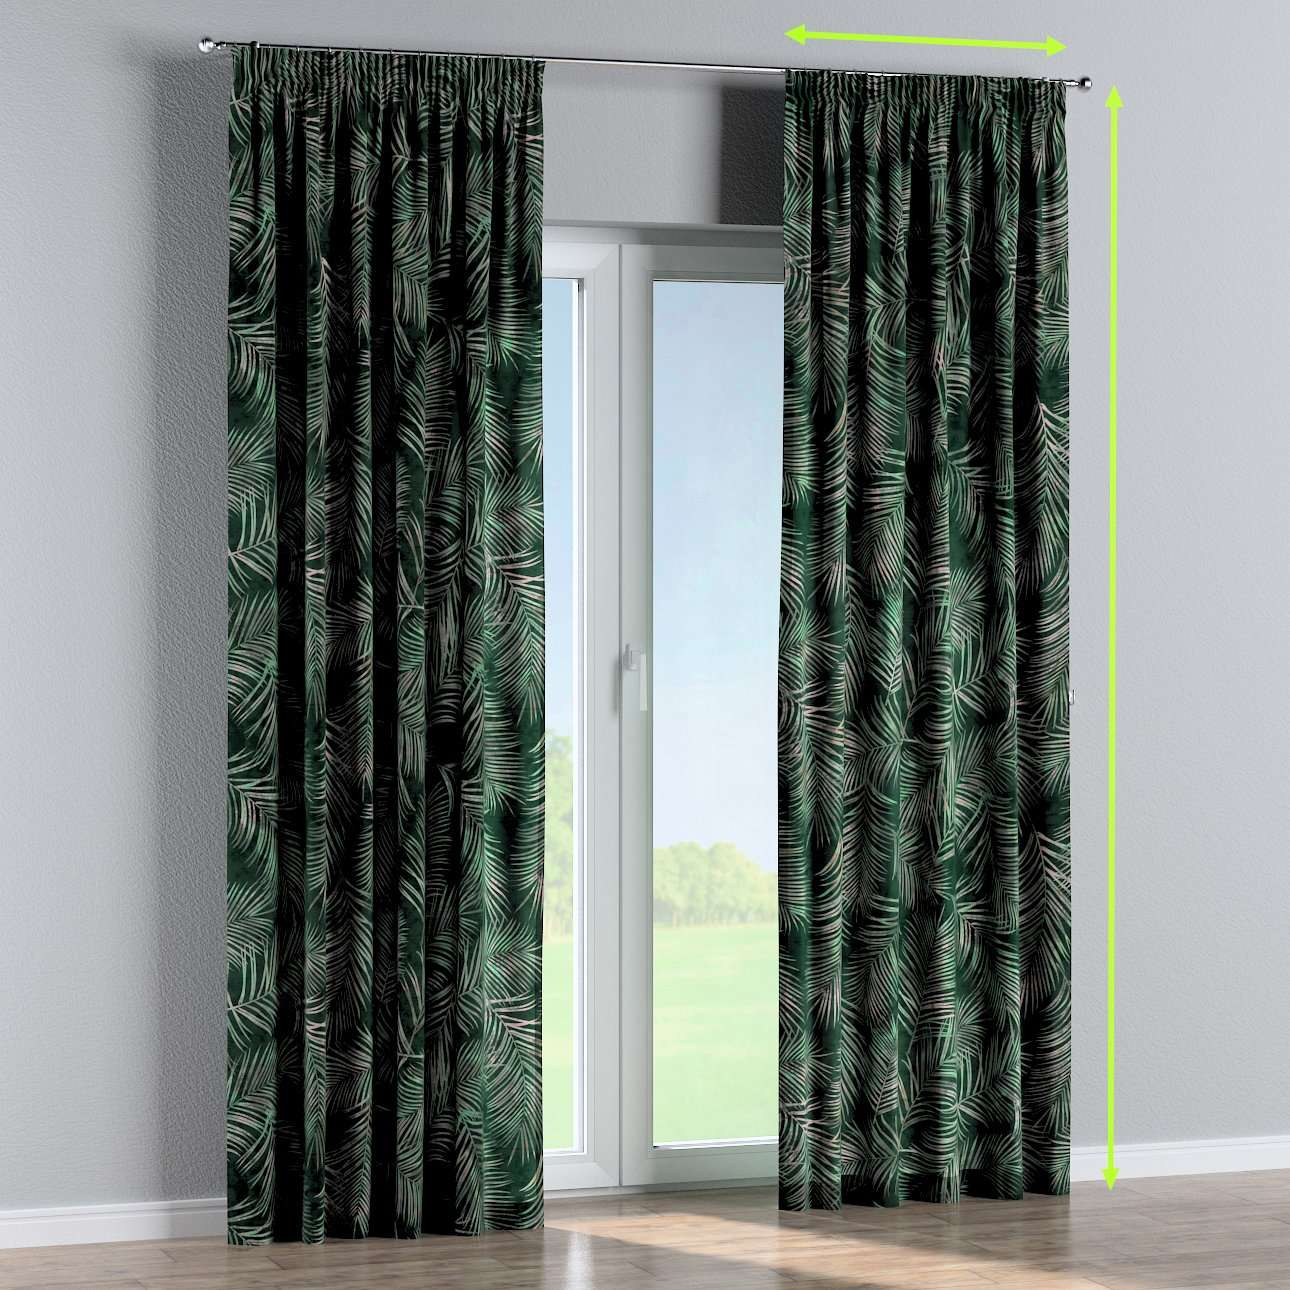 Pencil pleat lined curtains in collection Velvet, fabric: 704-21